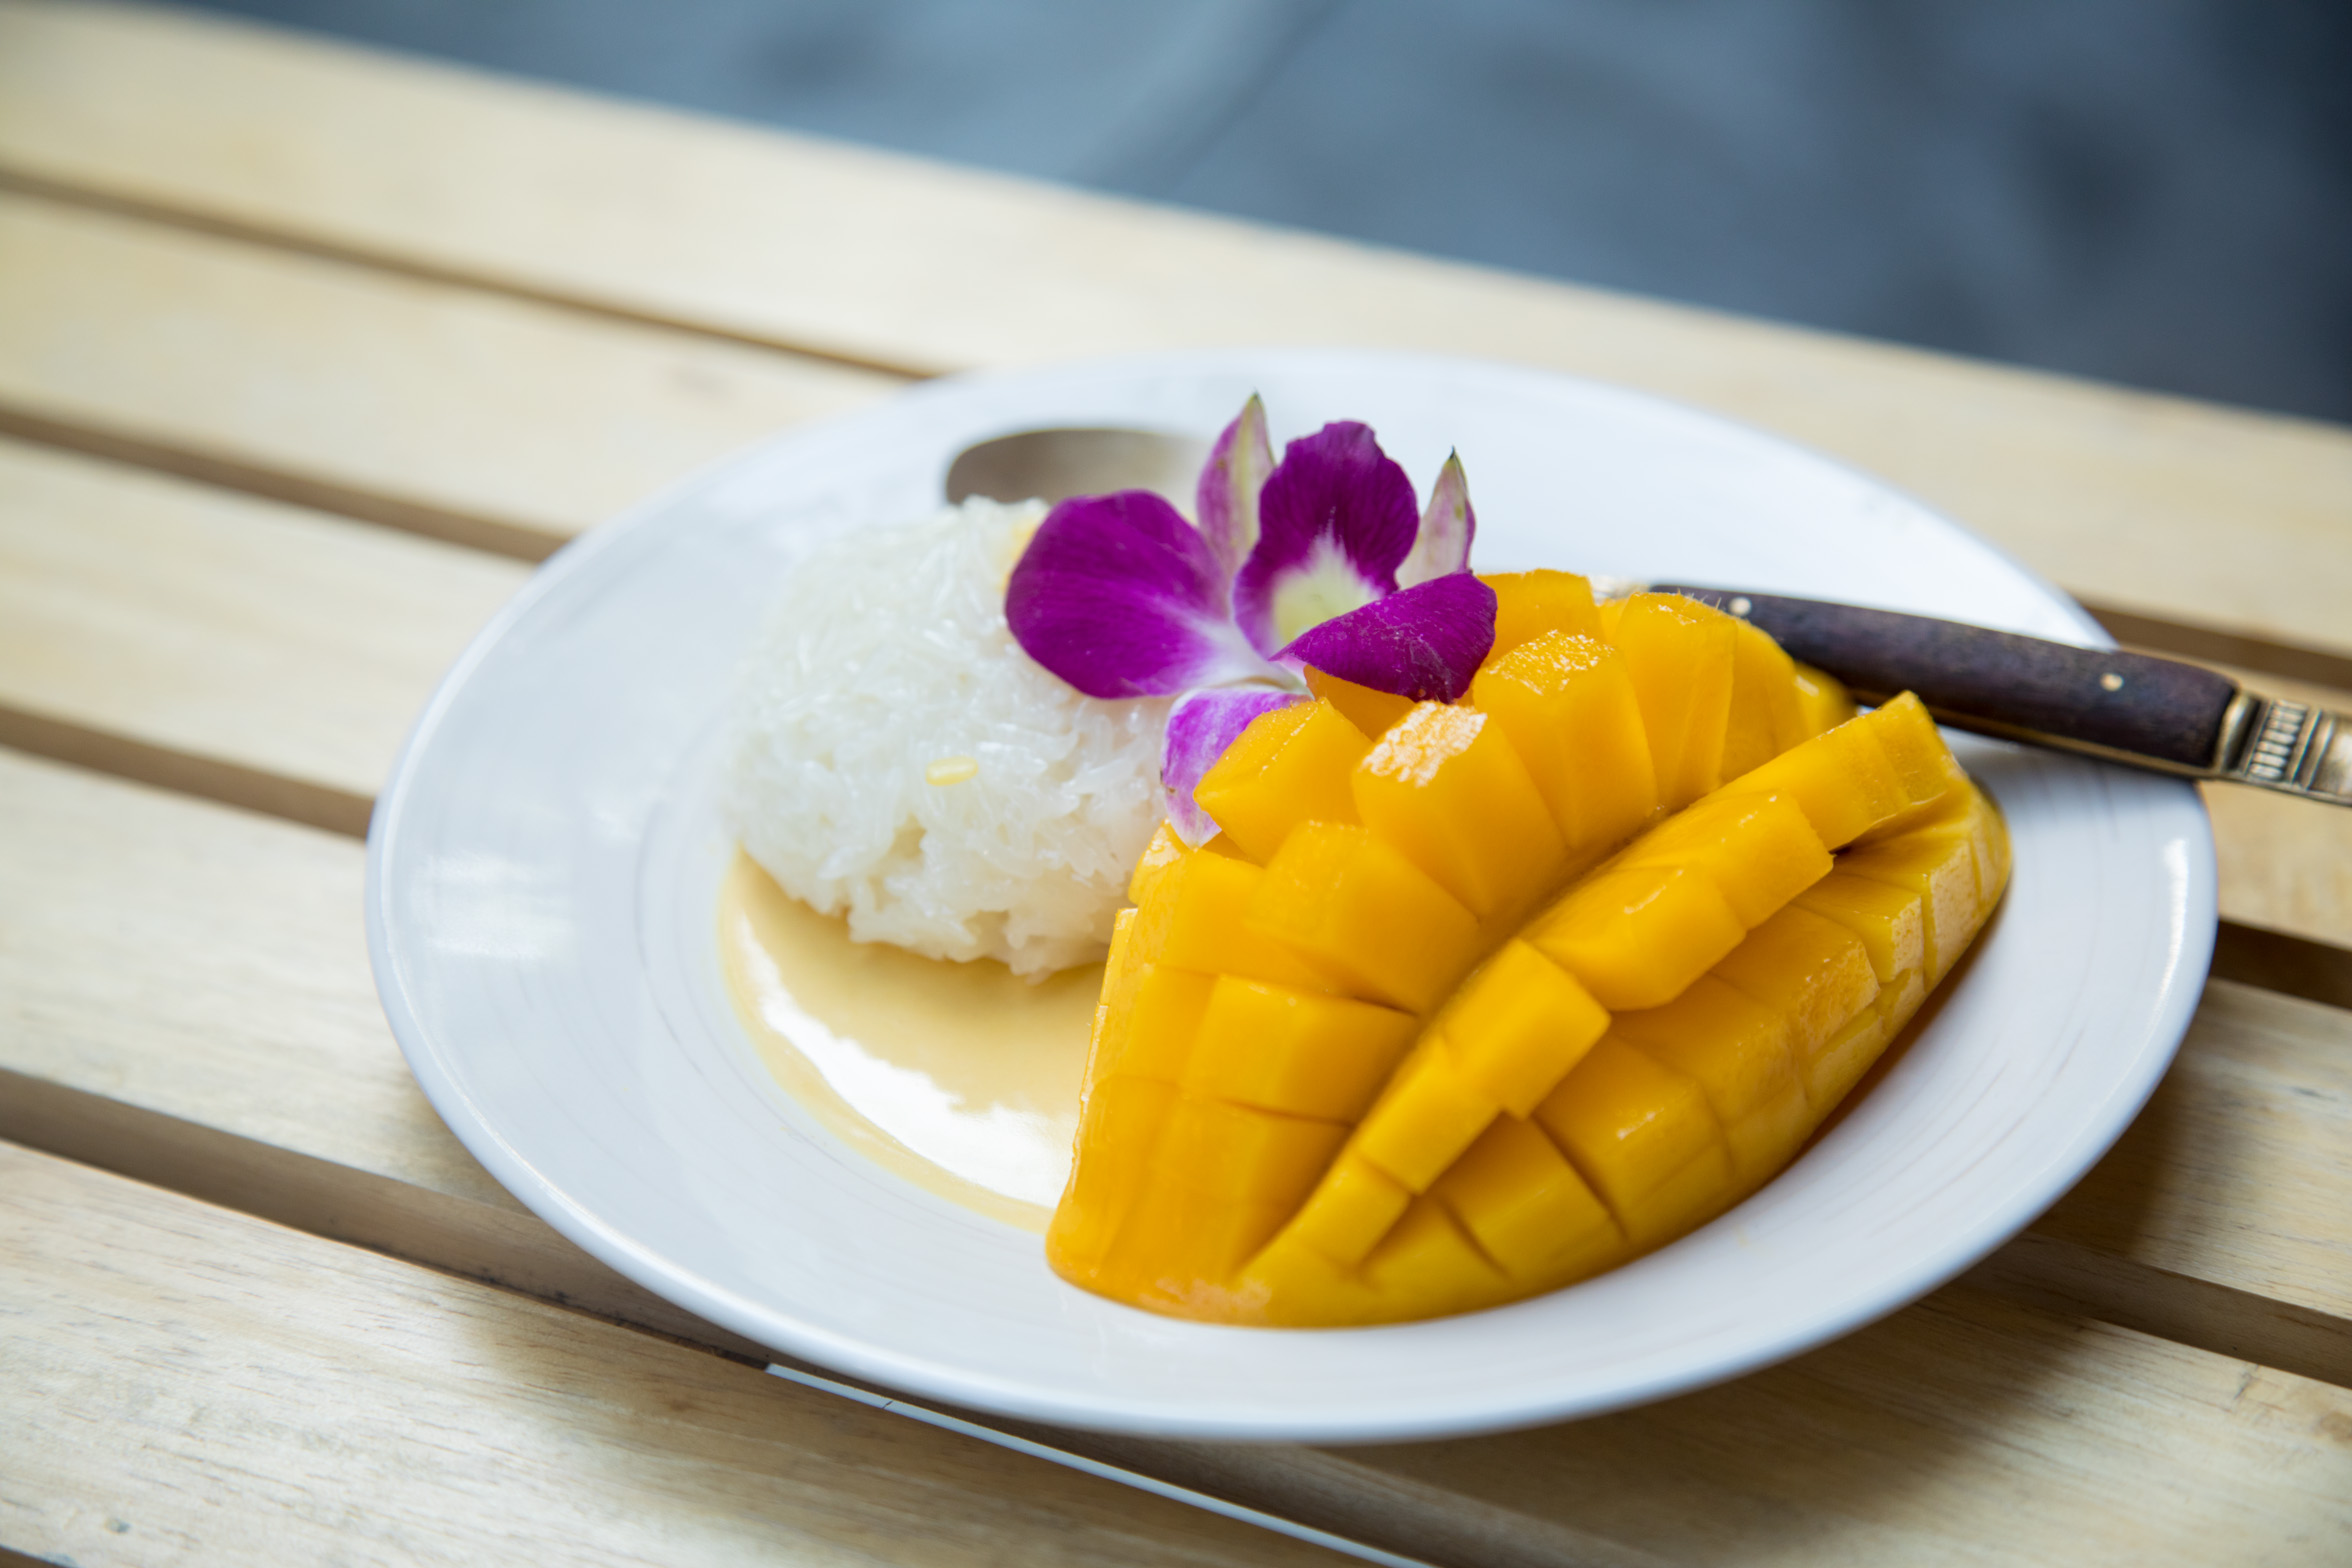 7. Mango Sticky Rice - As iconic as Pad Thai, this sweet dish is a quickie sold at almost every corner of Bangkok and takes less than two minutes to assemble. Sticky rice paired with half a diced mango garnished with cream and sesame seeds. Simple, uncomplicated with bags of flavours and textures, from sweet to starch and mush to crackling. A plate of Mango Sticky Rice doesn't cost more than 50 baht.